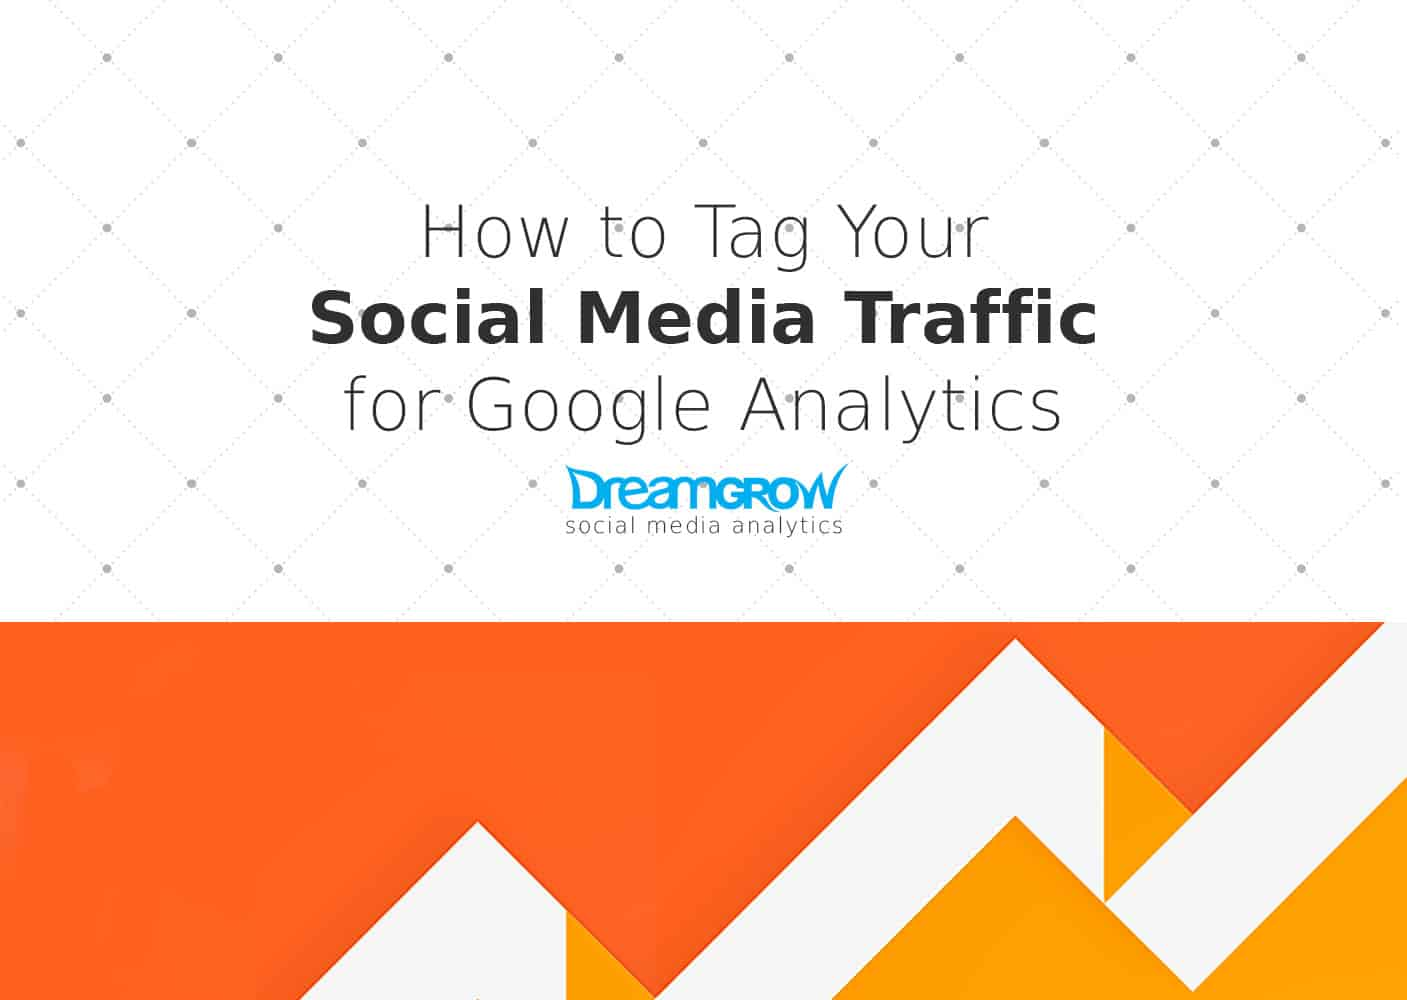 How to tag your social media traffic for google analytics dreamgrow 2017